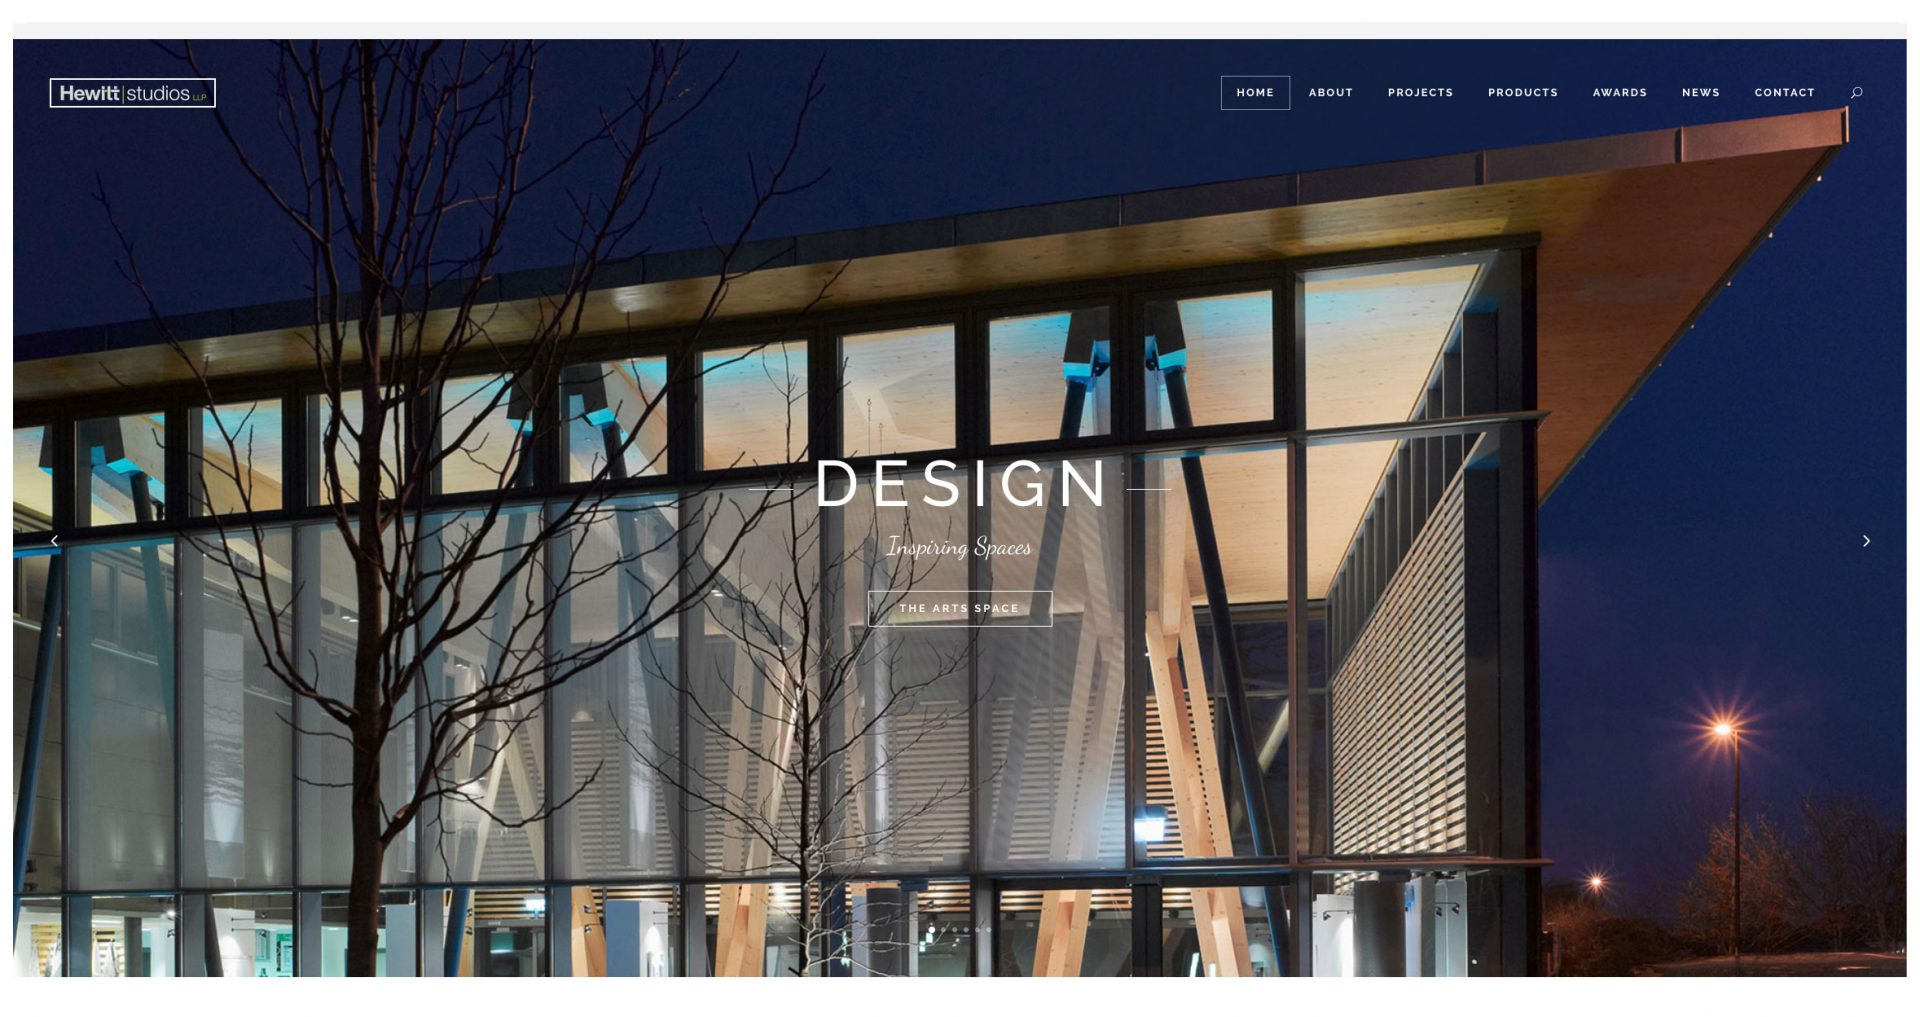 Hewitt Studios new website launch redesign